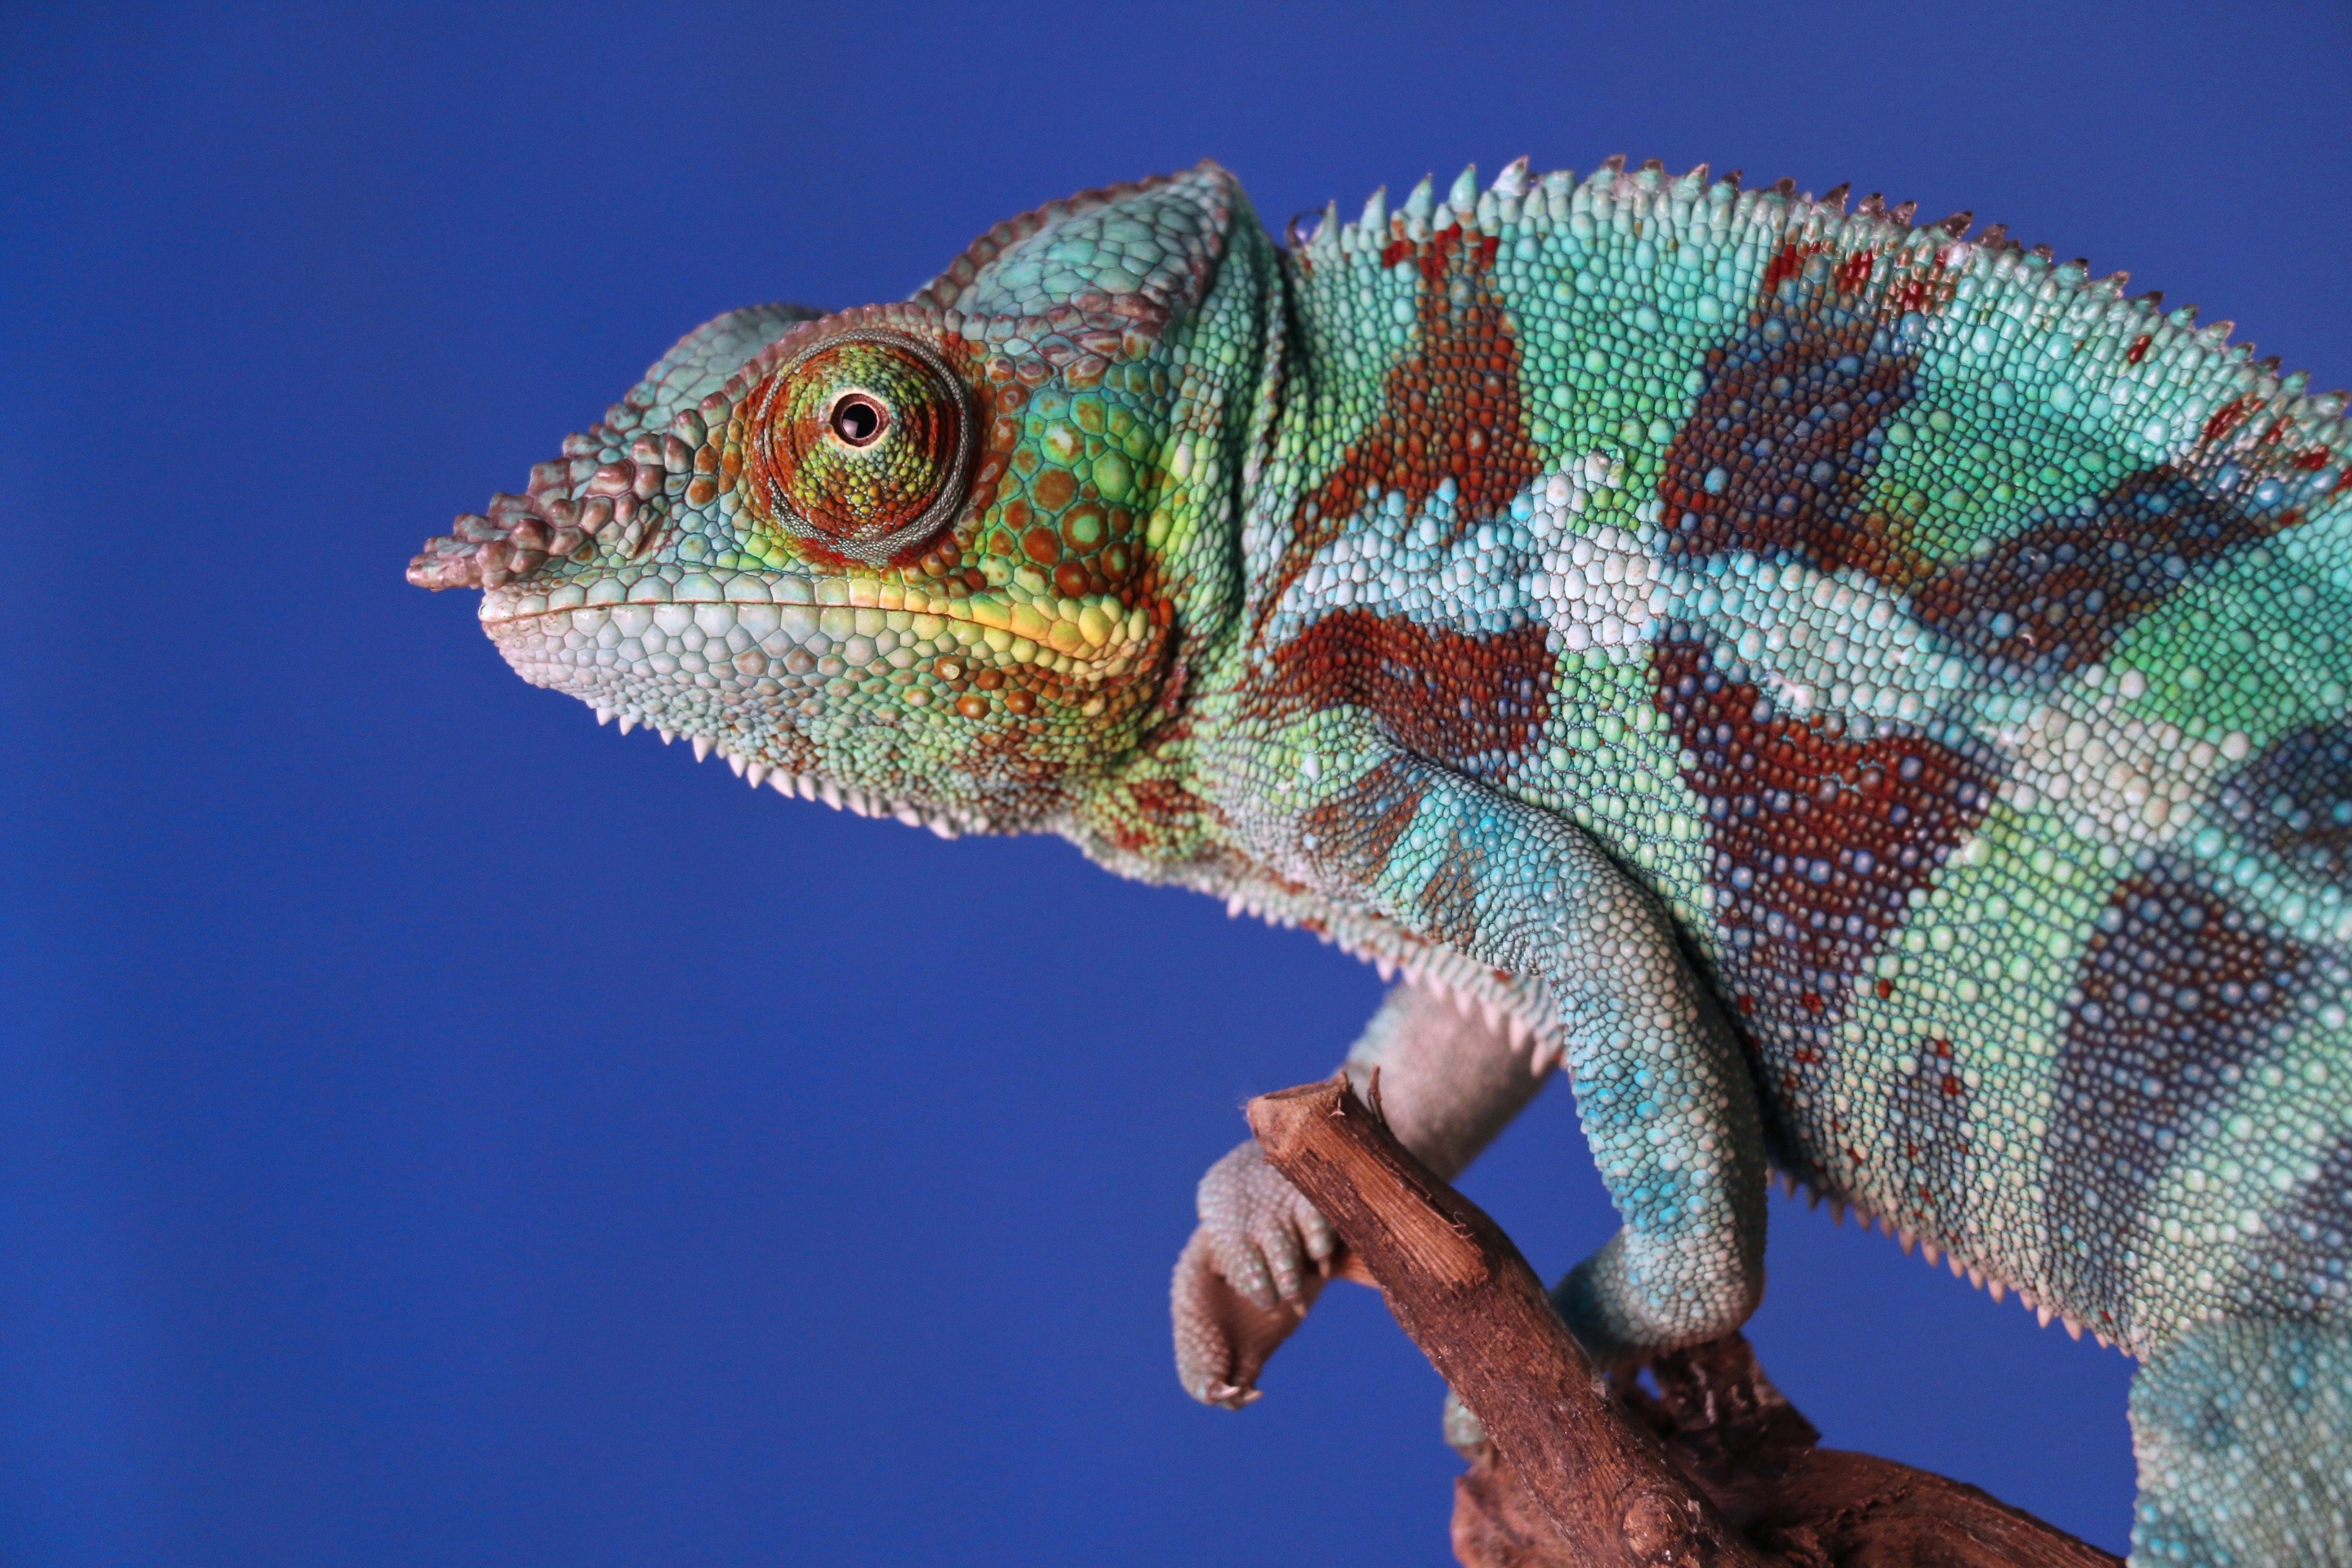 closeup photography of gray and brown chameleon